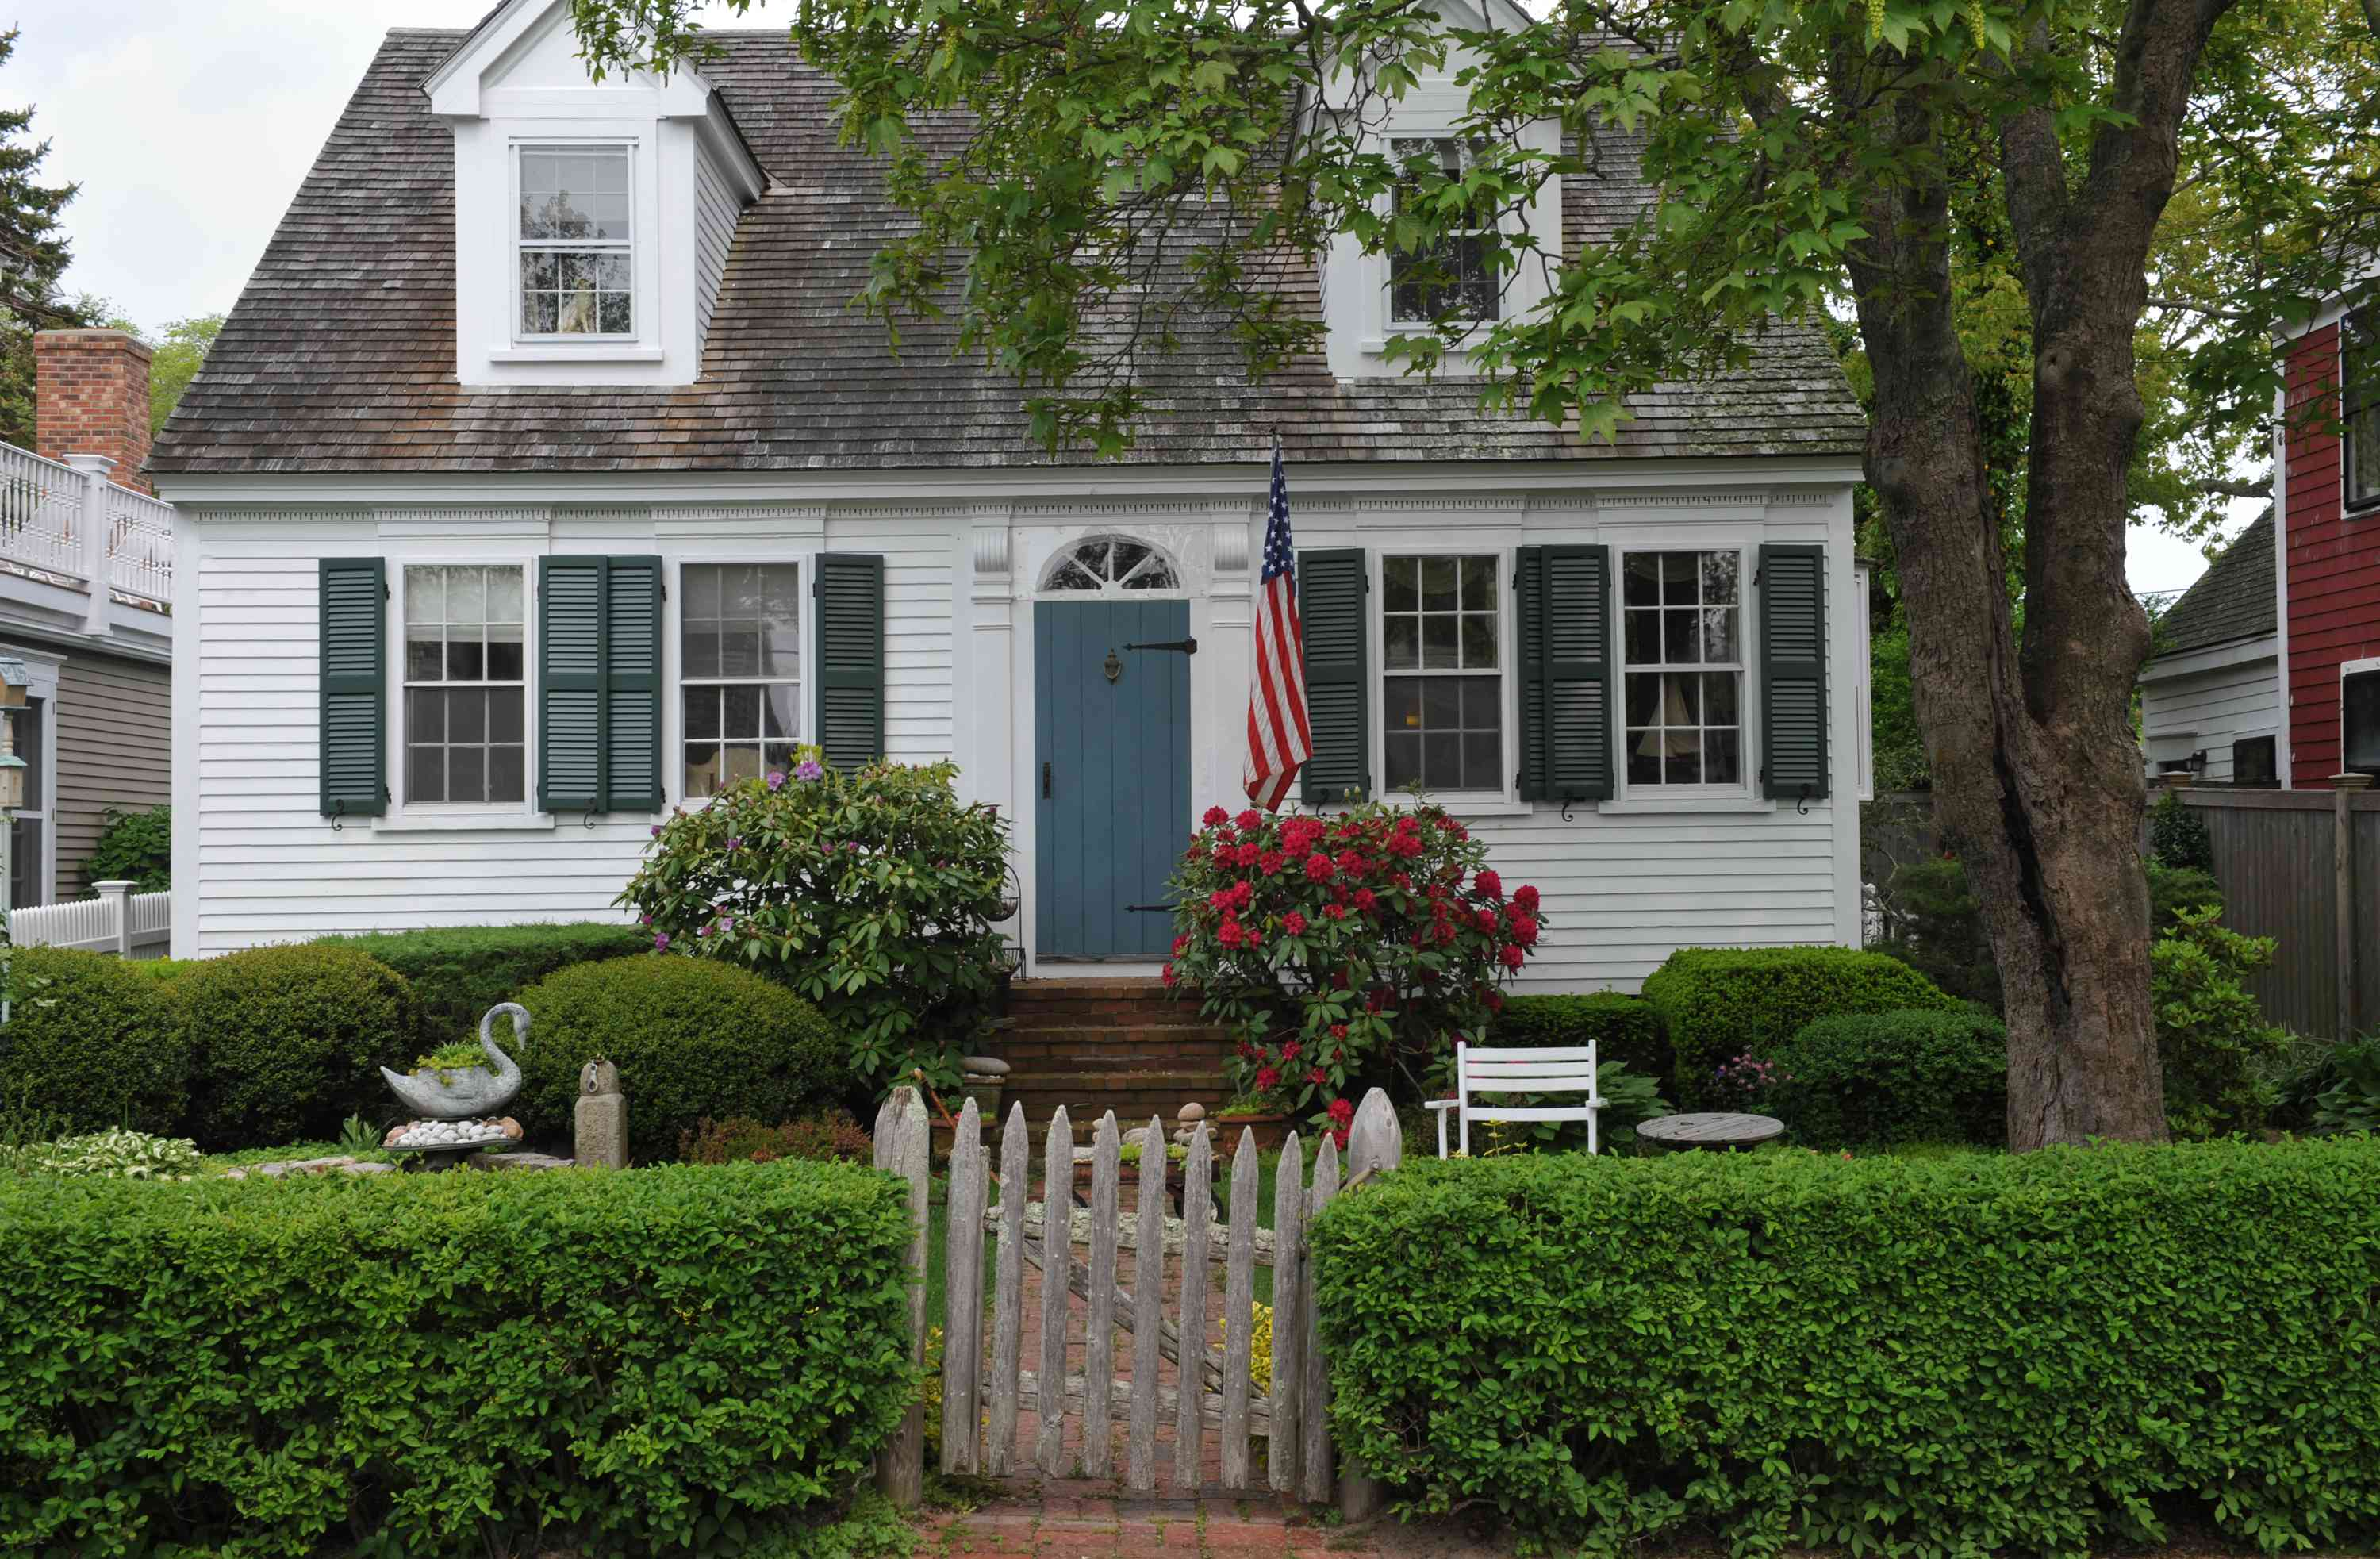 Cape Cod style house in Provincetown, Mass.